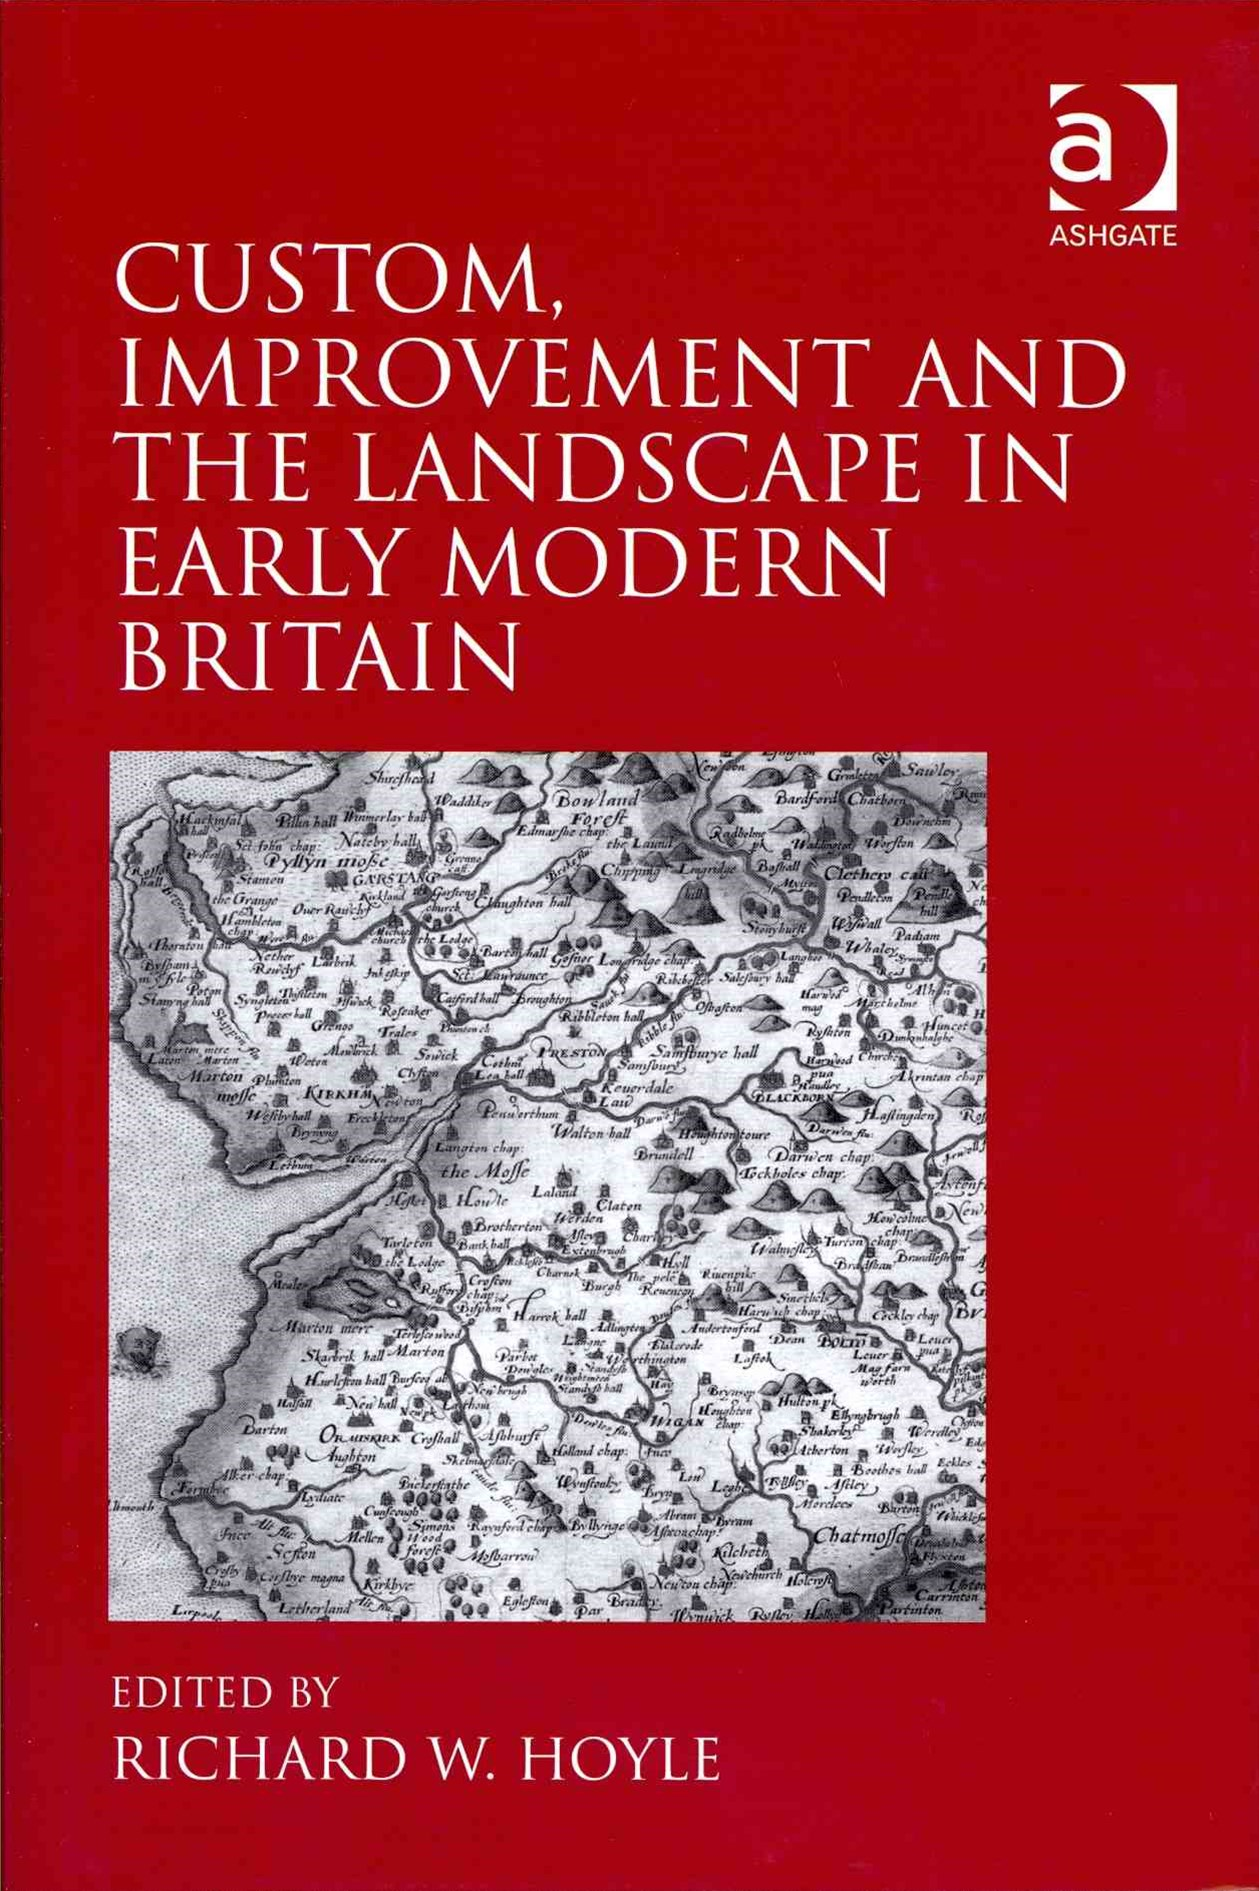 Custom, Improvement and the Landscape in Early Modern Britain